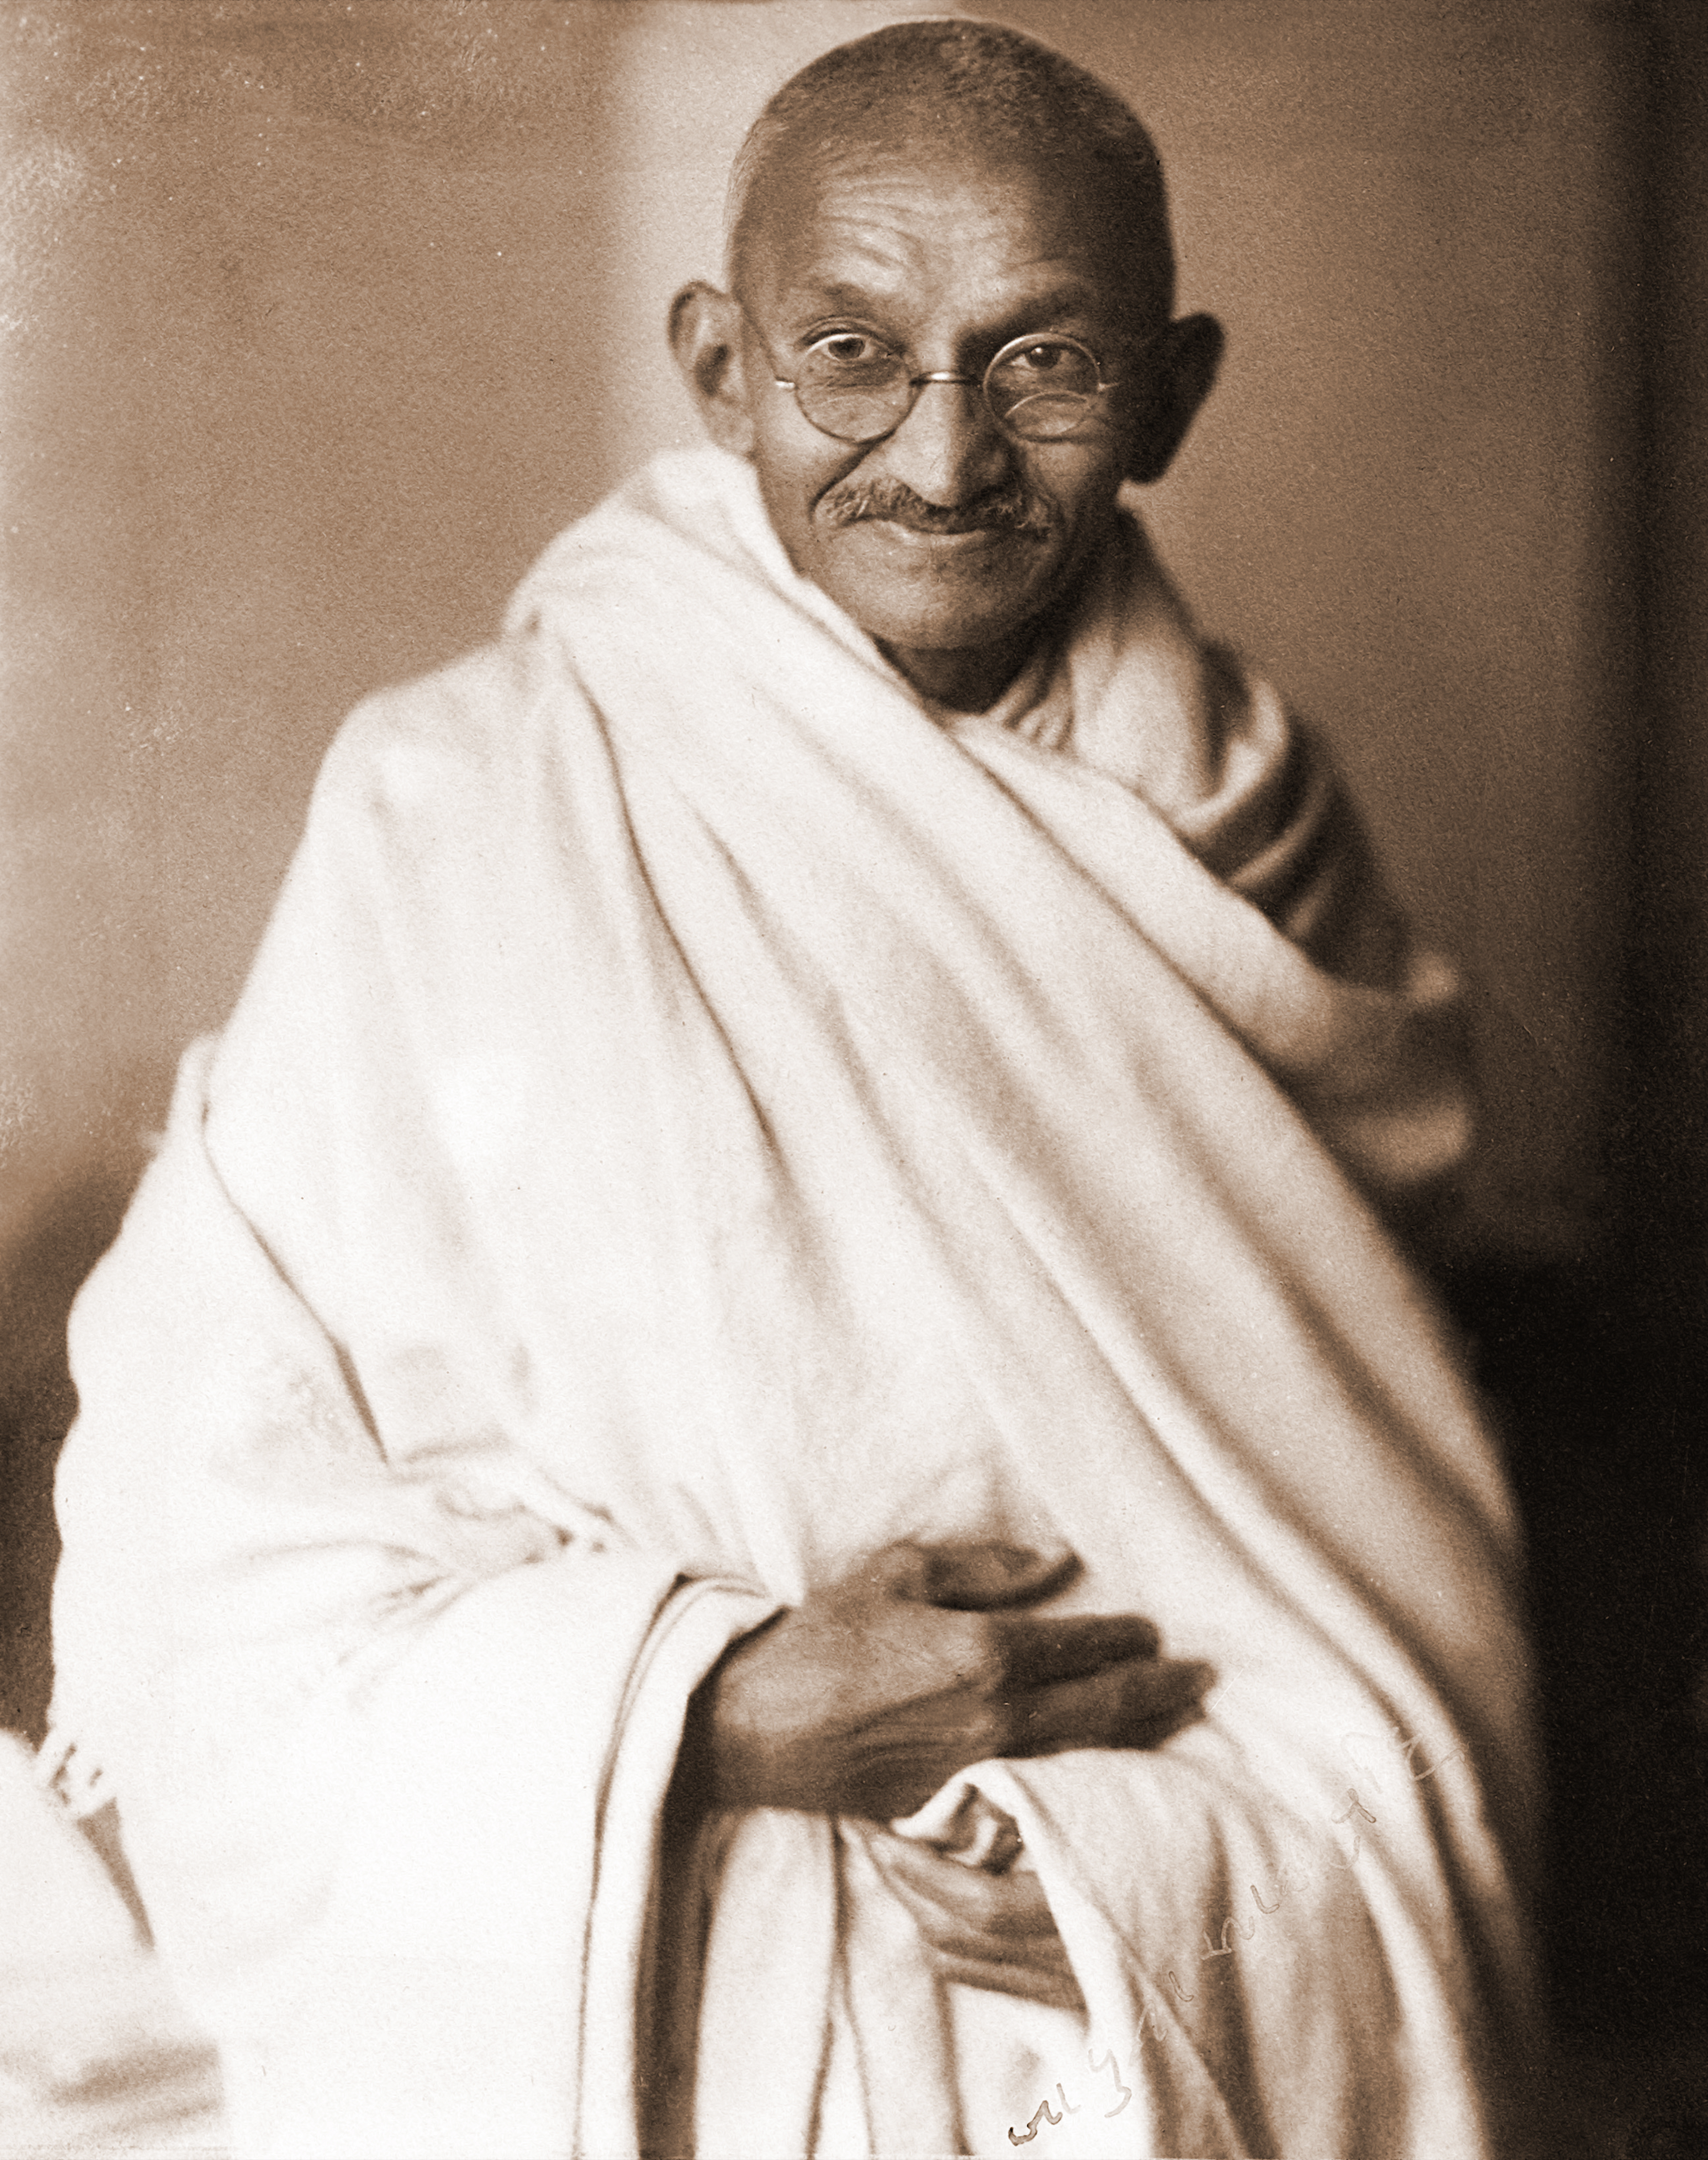 Gandhi Based On